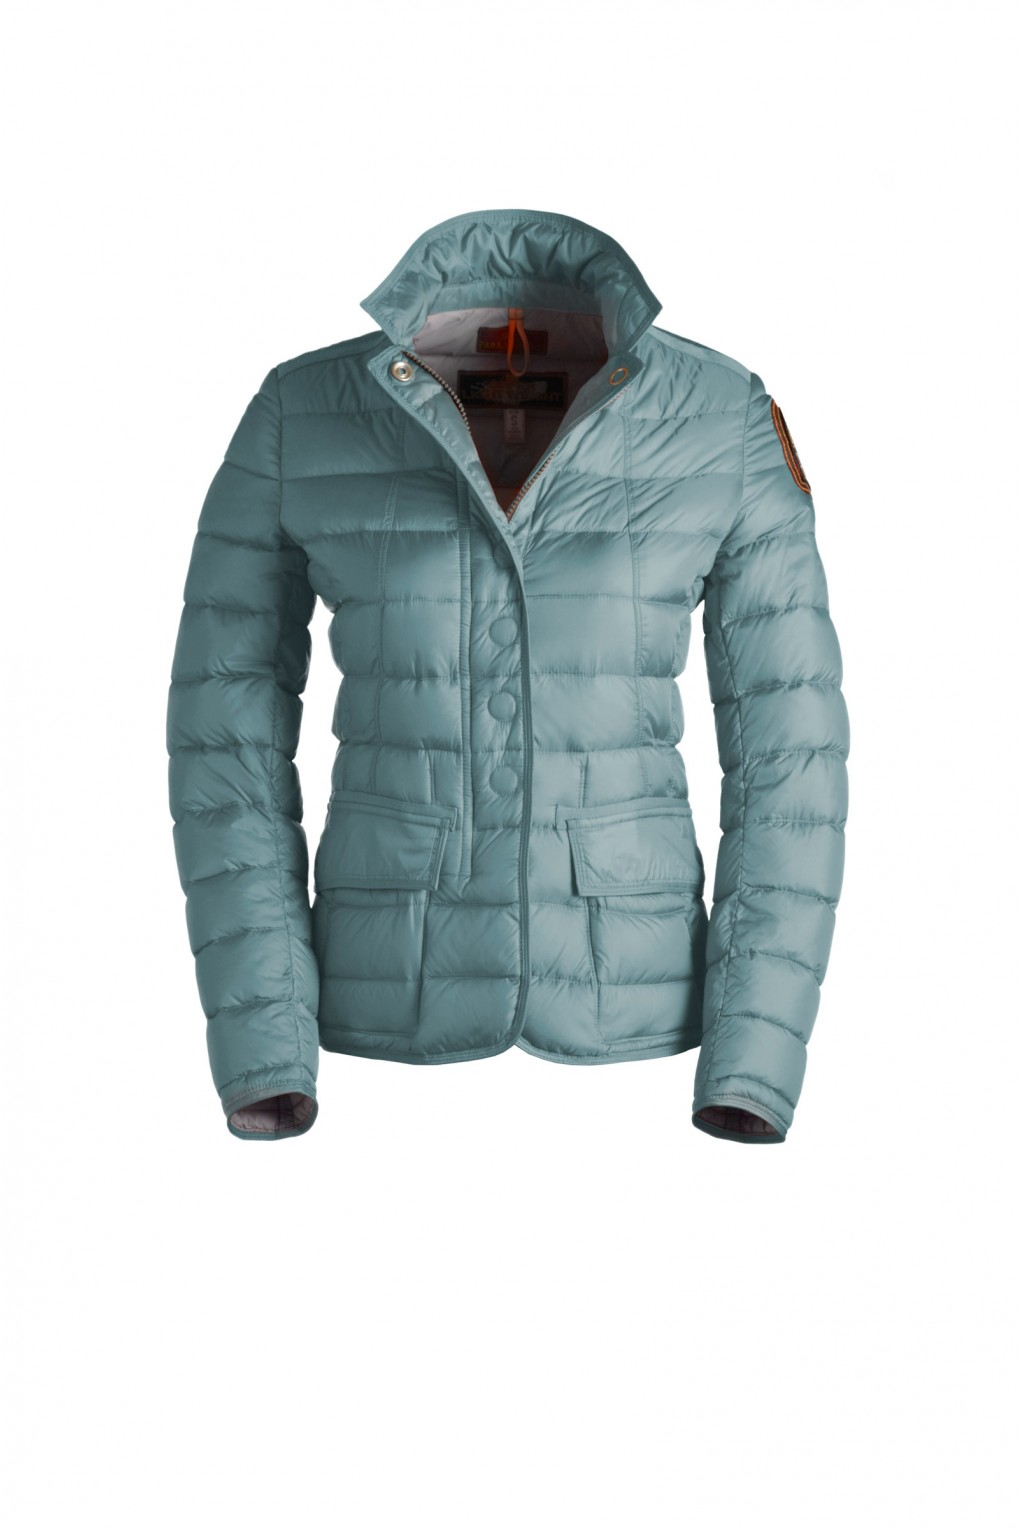 parajumpers ALISEE 6 woman outerwear Aqua